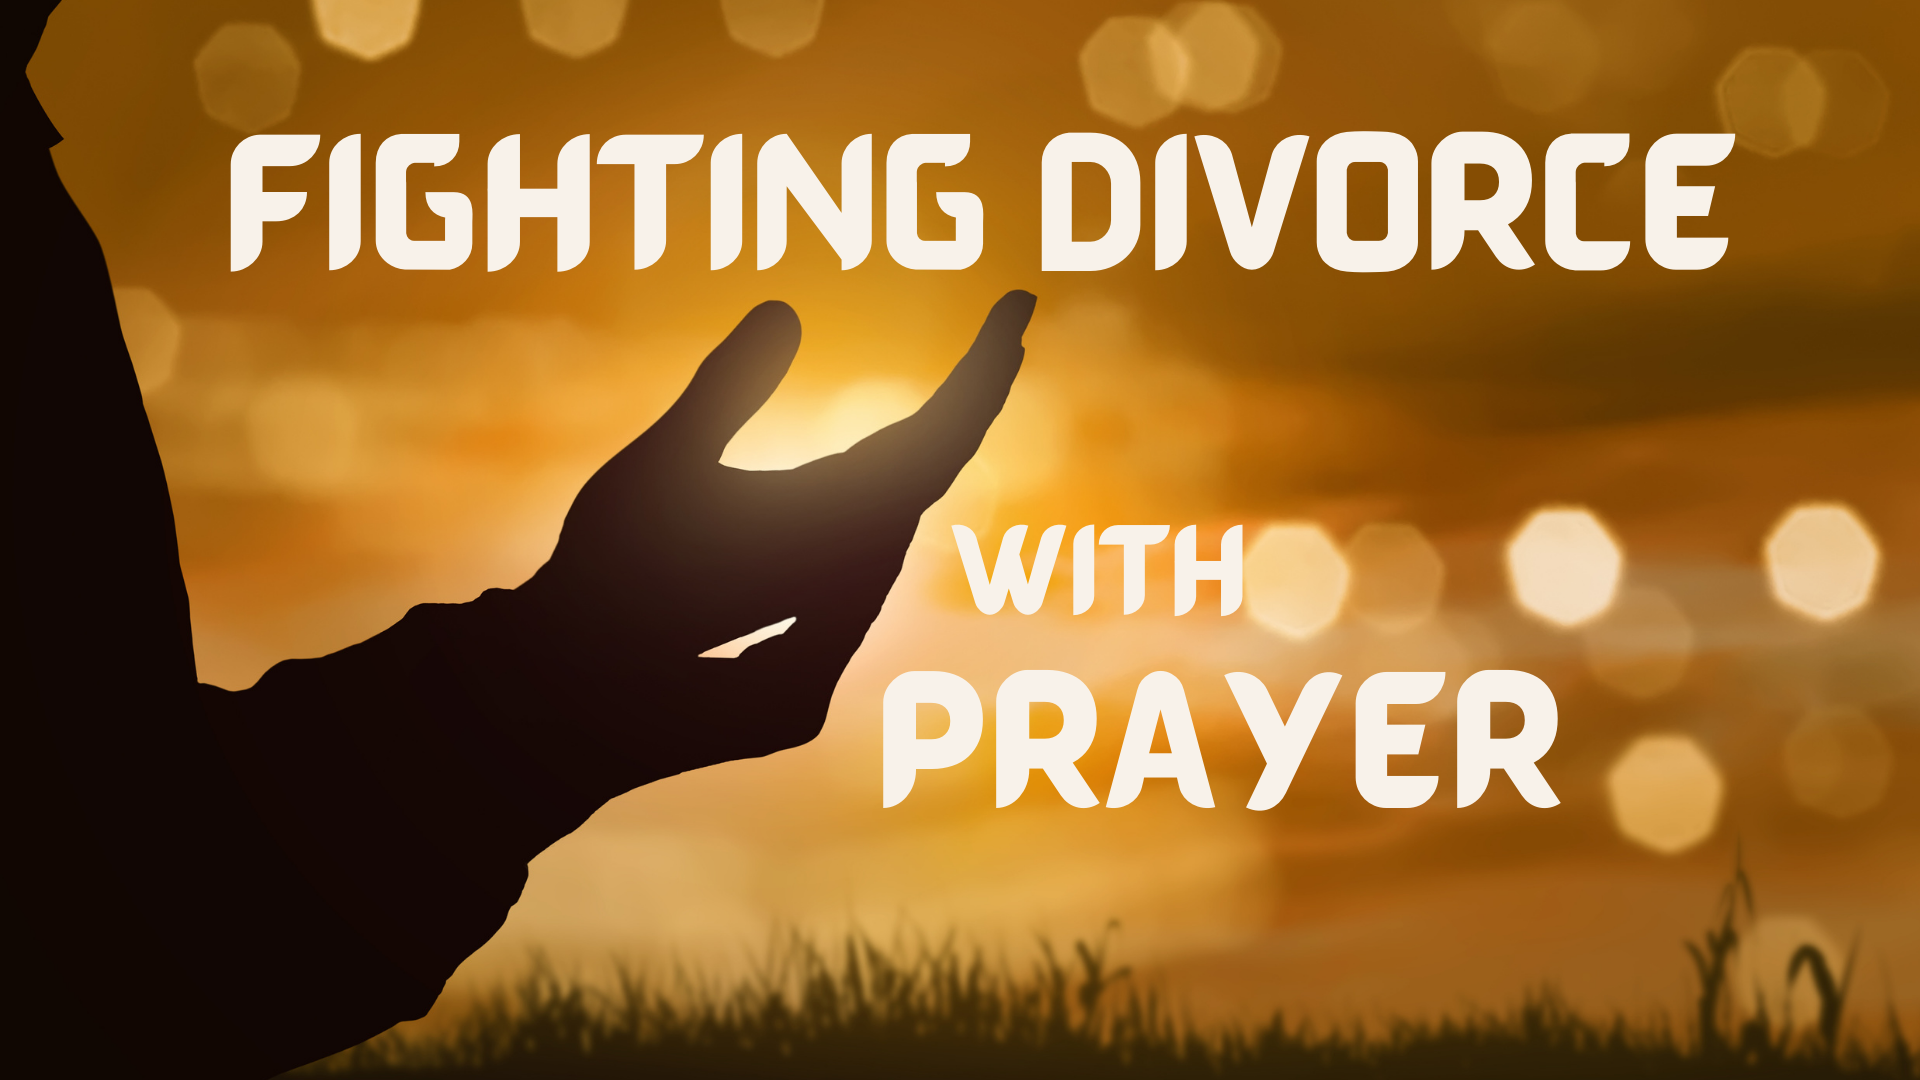 Fighting Divorce with Prayer